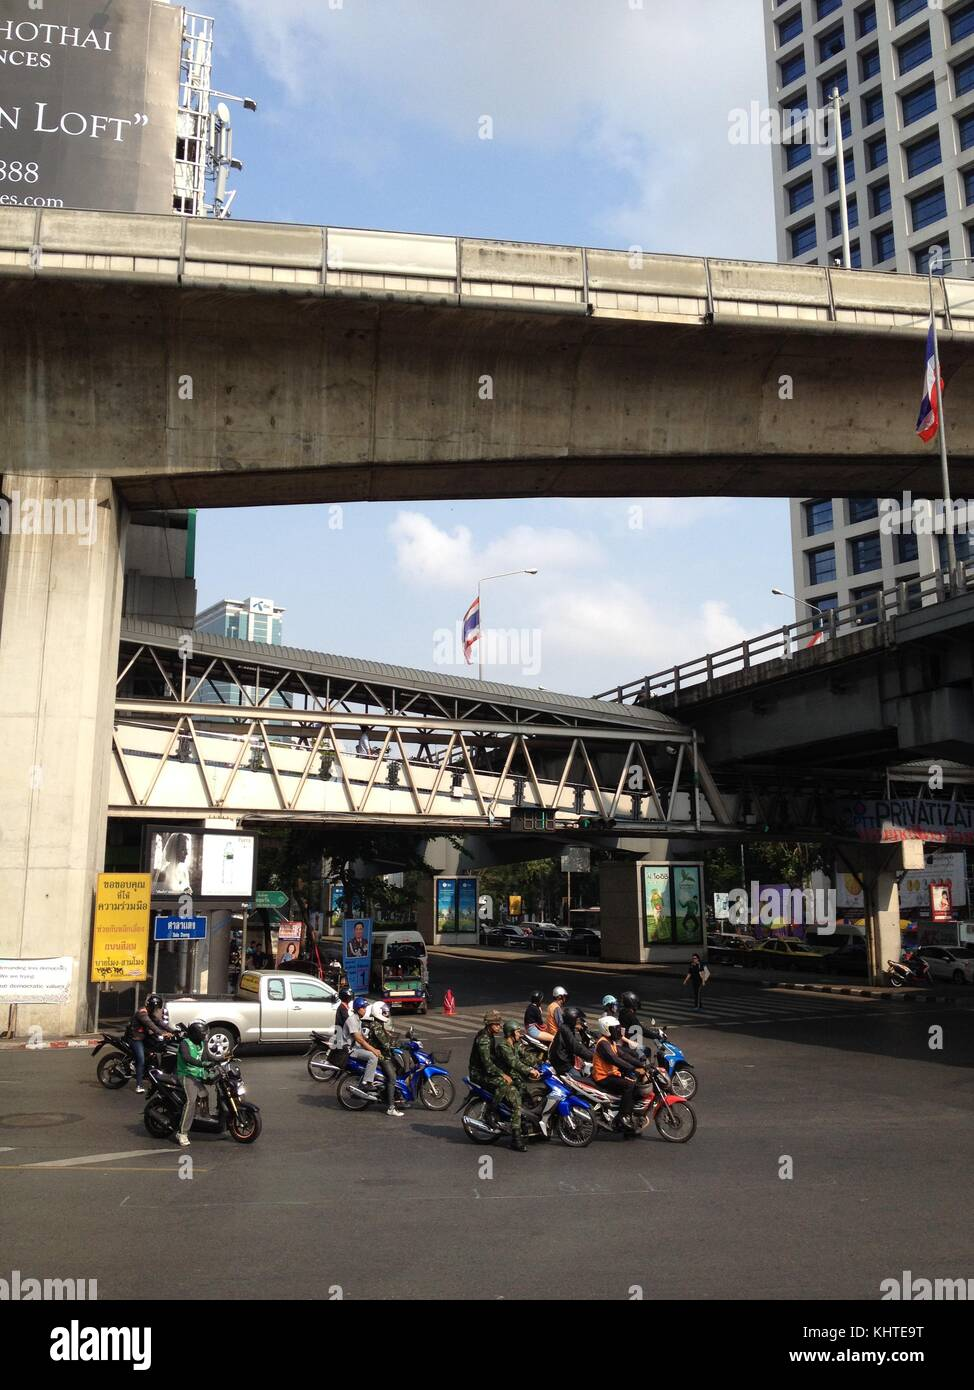 Traffic on the road in central Bangkok - Stock Image